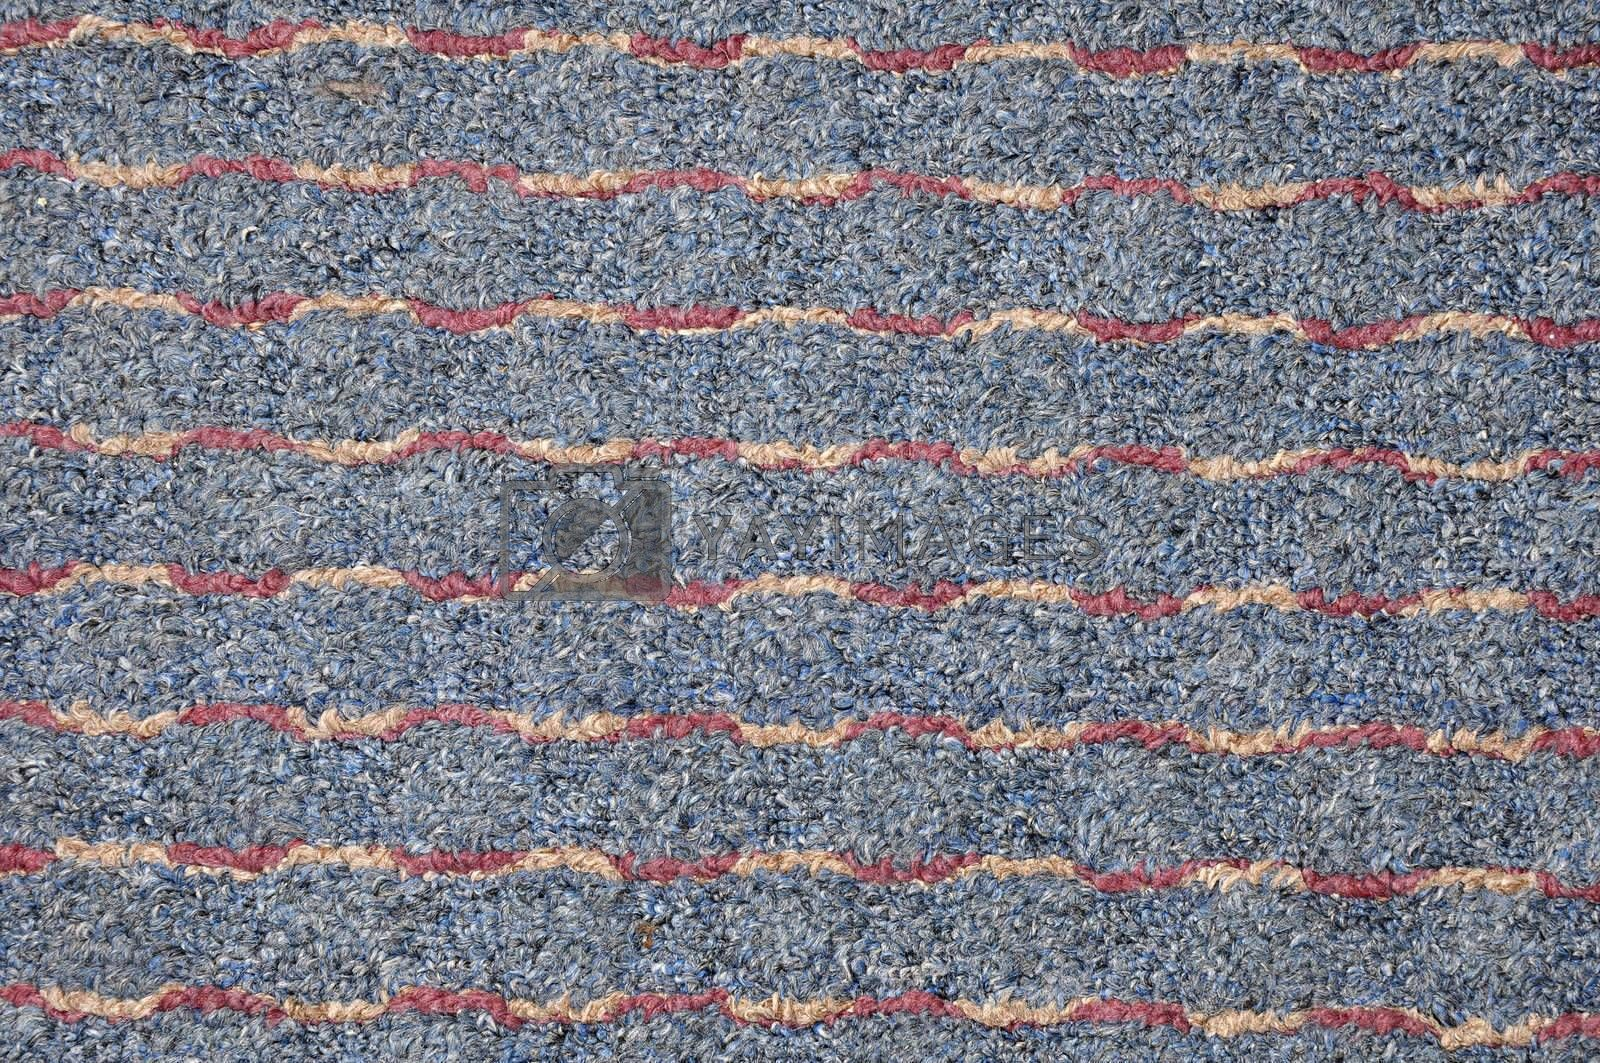 abstract view of a blue multi-colored carpet